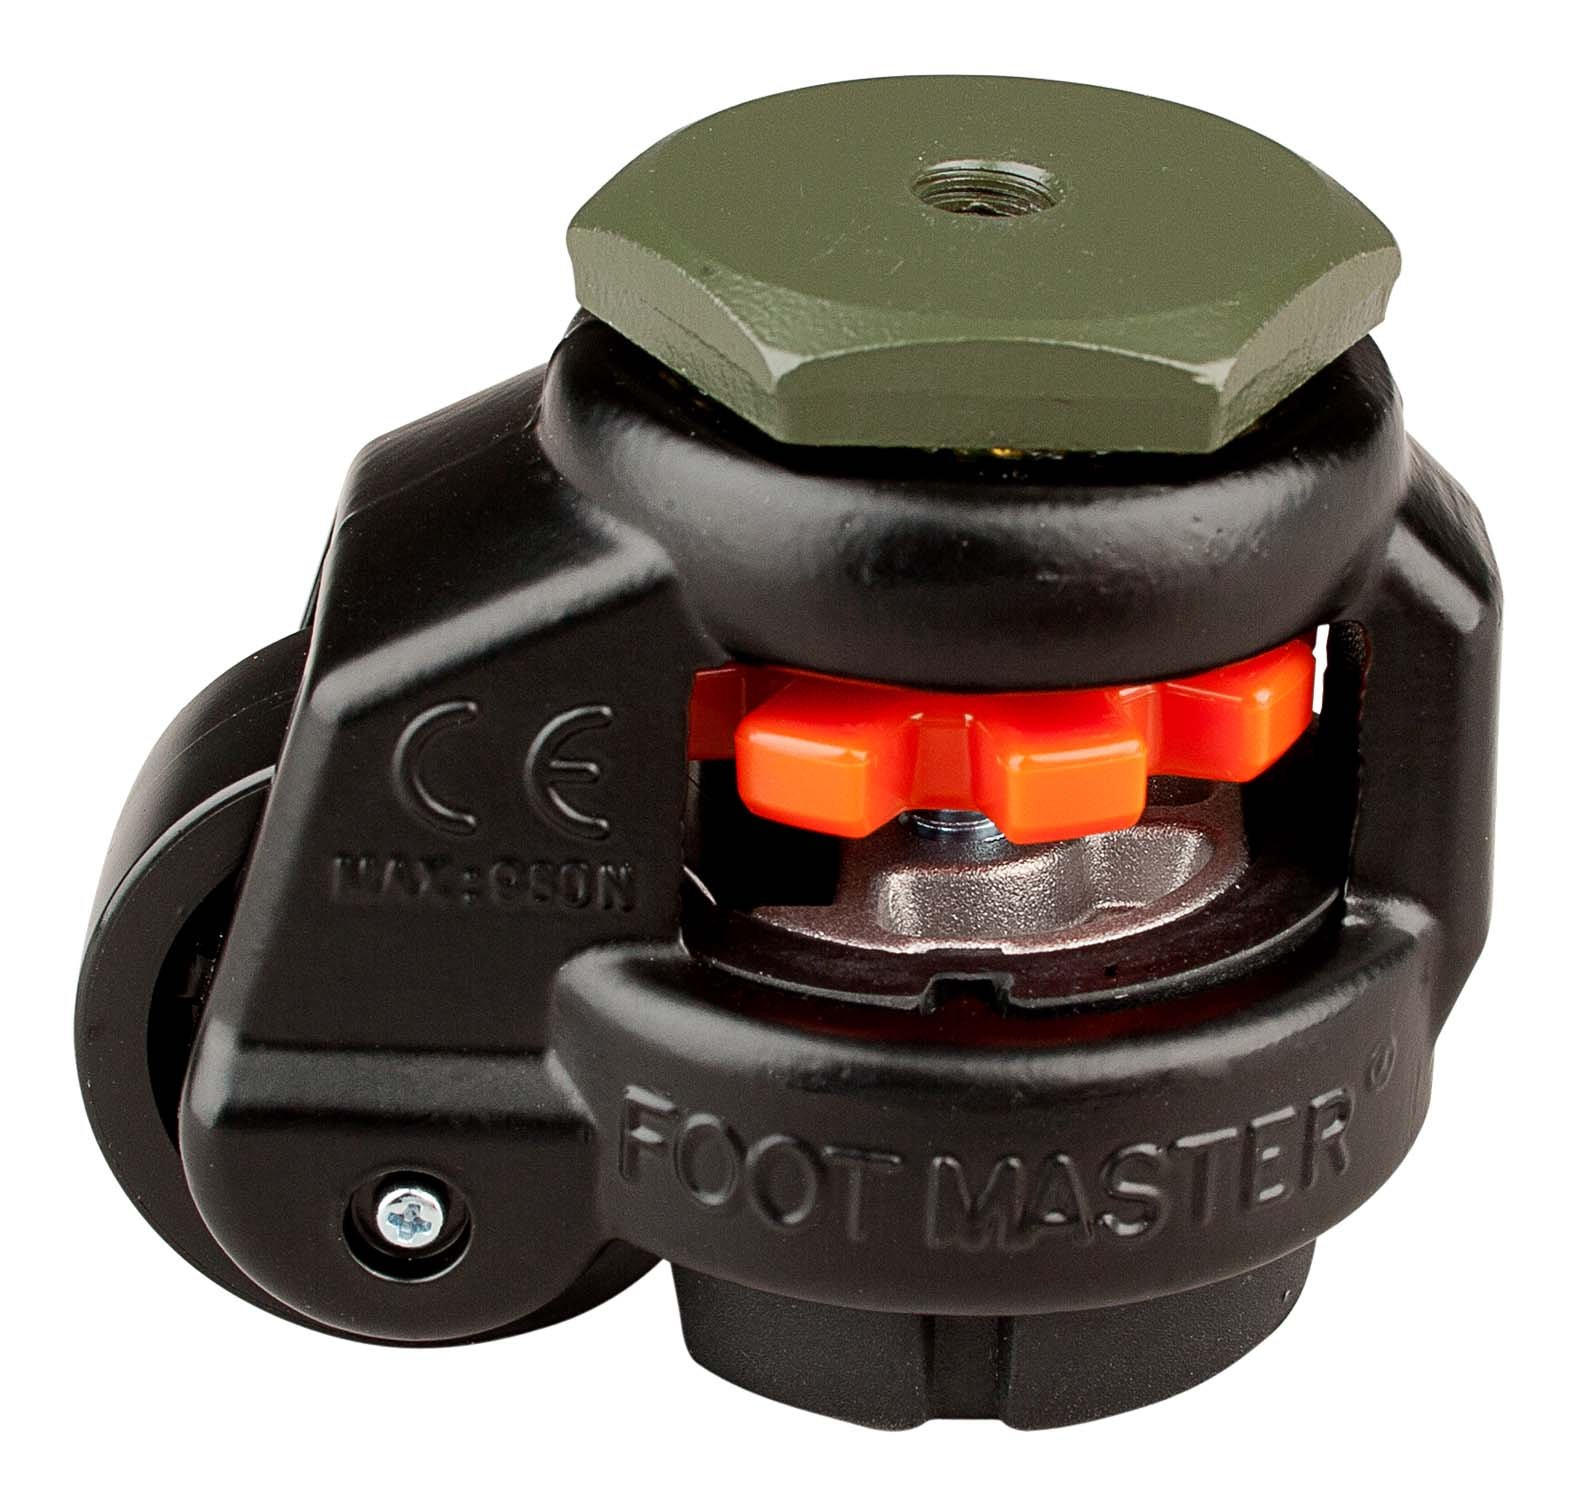 FOOTMASTER GD-40S-BLK Nylon Wheel and NBR Pad Leveling Caster, 110 lbs, Stem Mounted with 0.315'' Mounting Hole Diameter, Black Finish